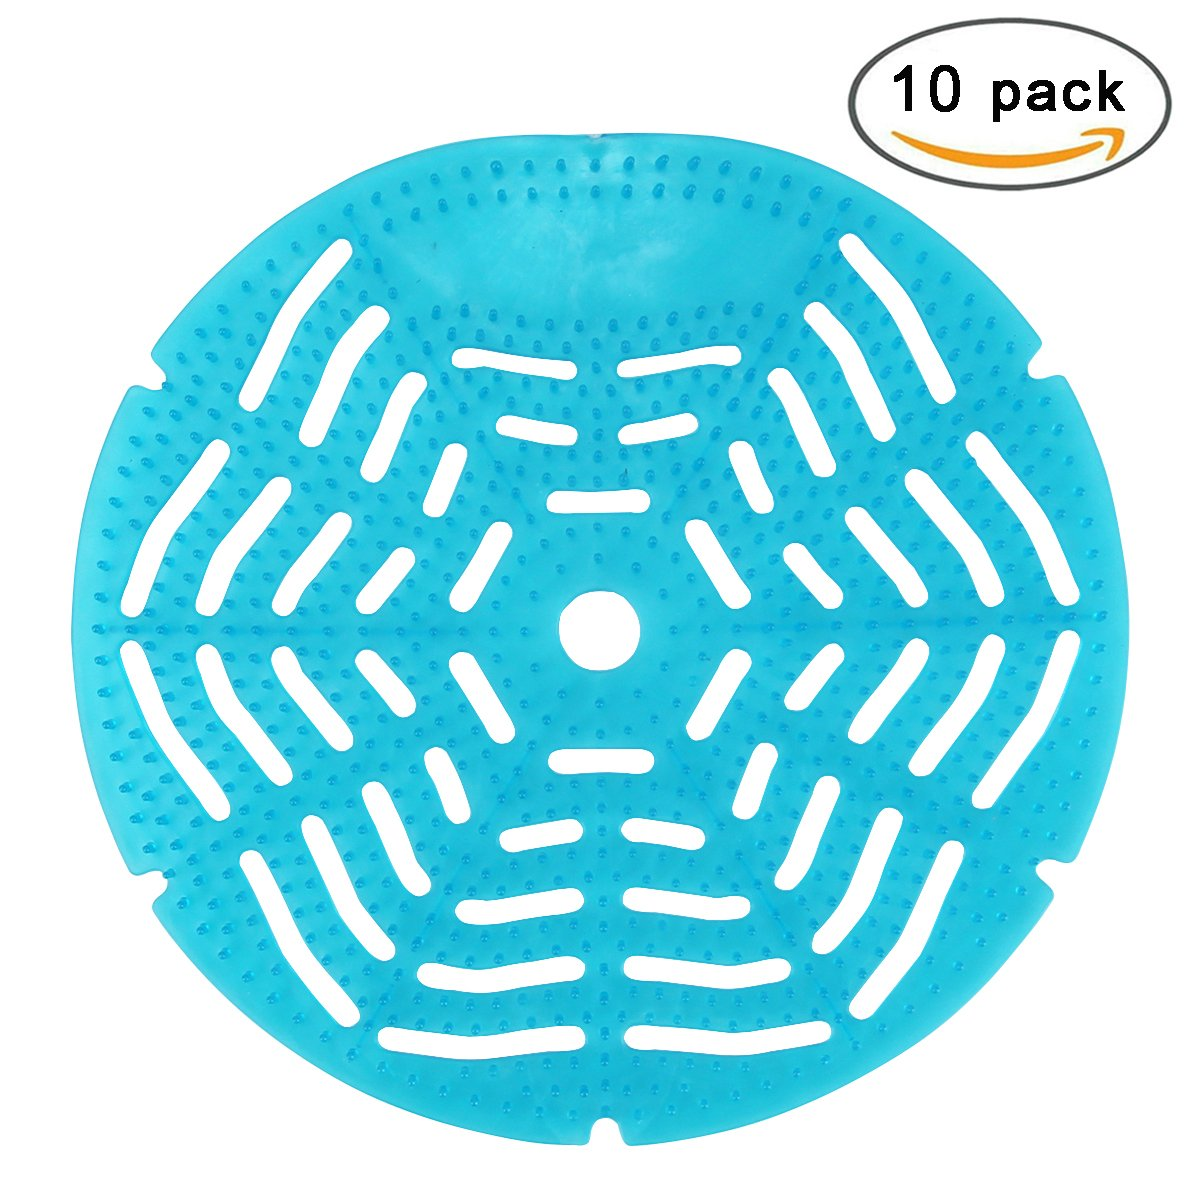 DDG EDMMS 10 packs of urine air freshener splash protector each urine smell vanilla blue